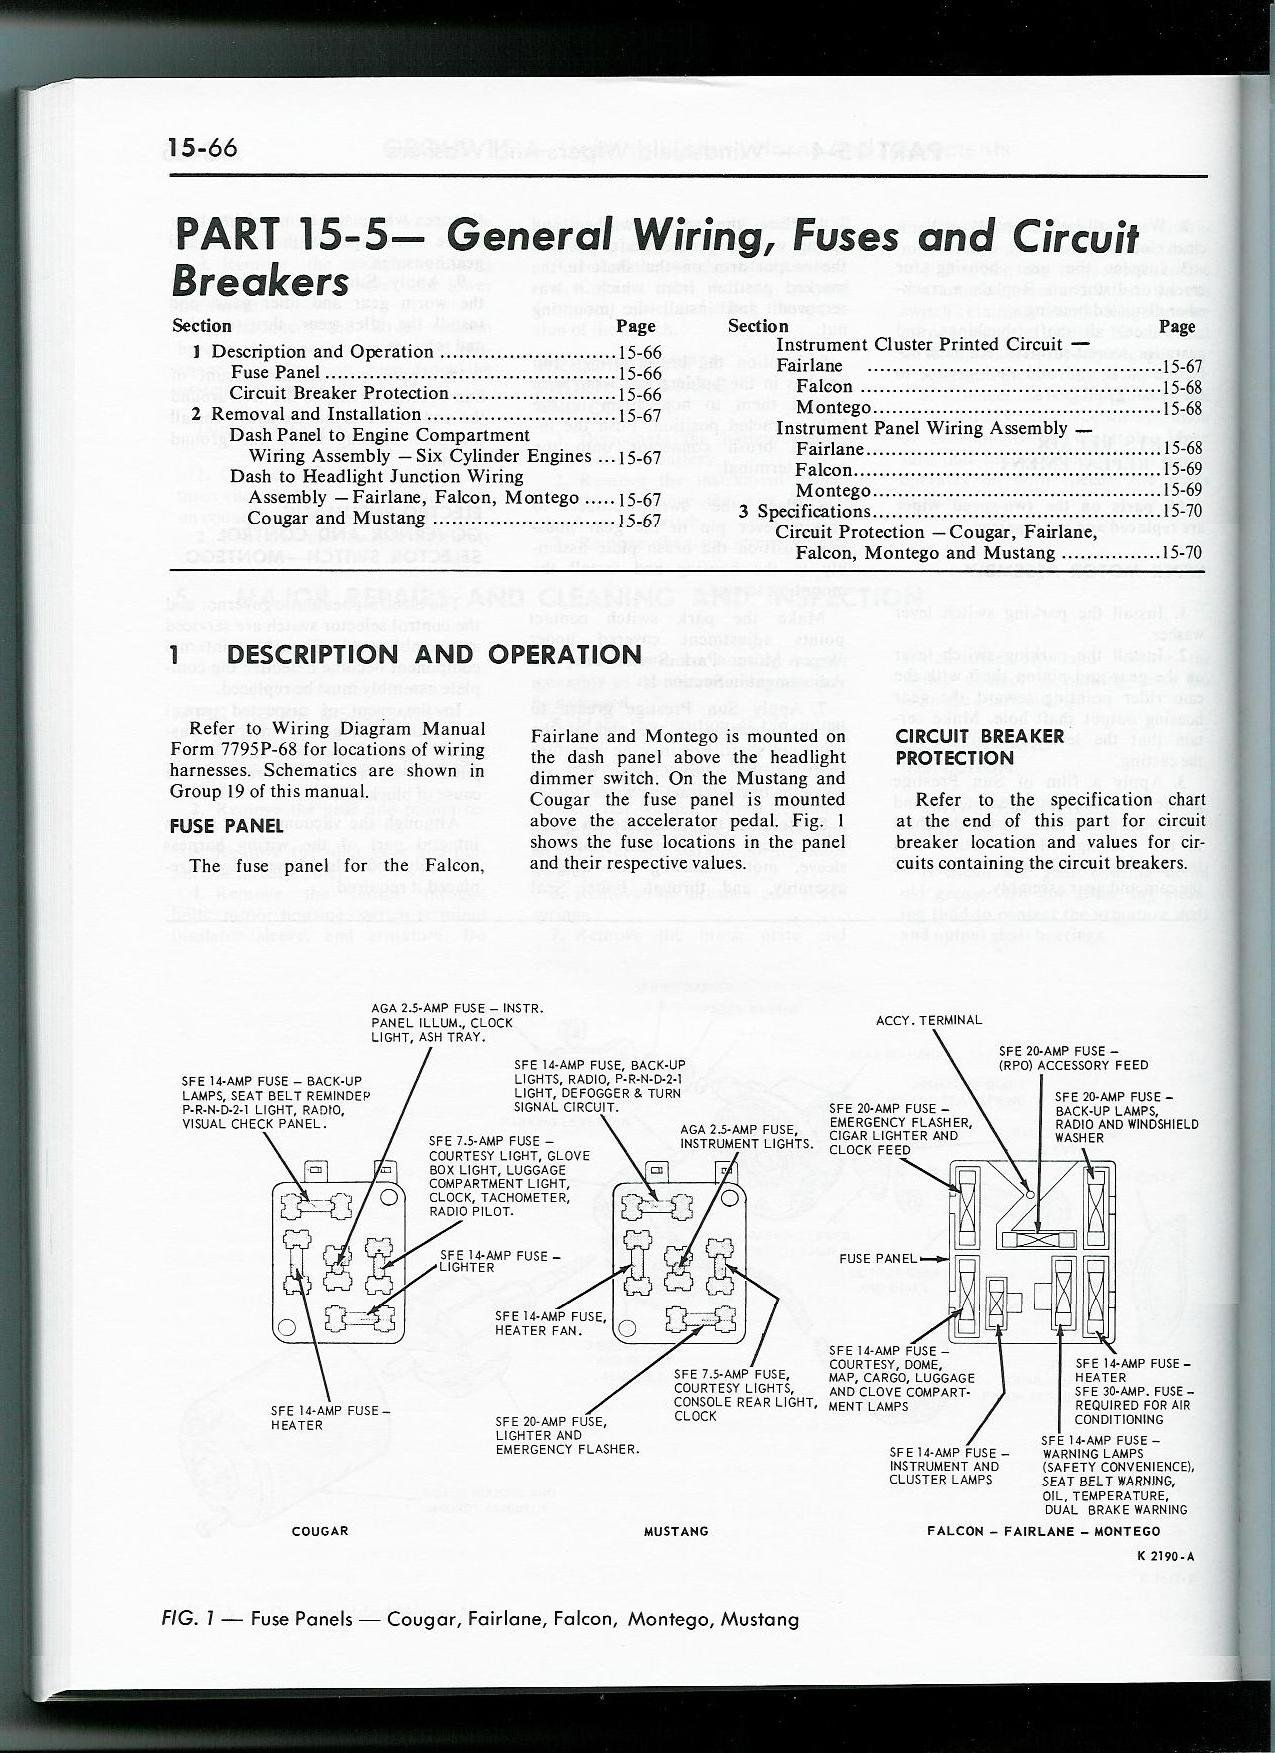 1965 mustang fuse panel fuse box diagram ford mustang forum click image for larger version 68 fuse box jpg views 66689 size